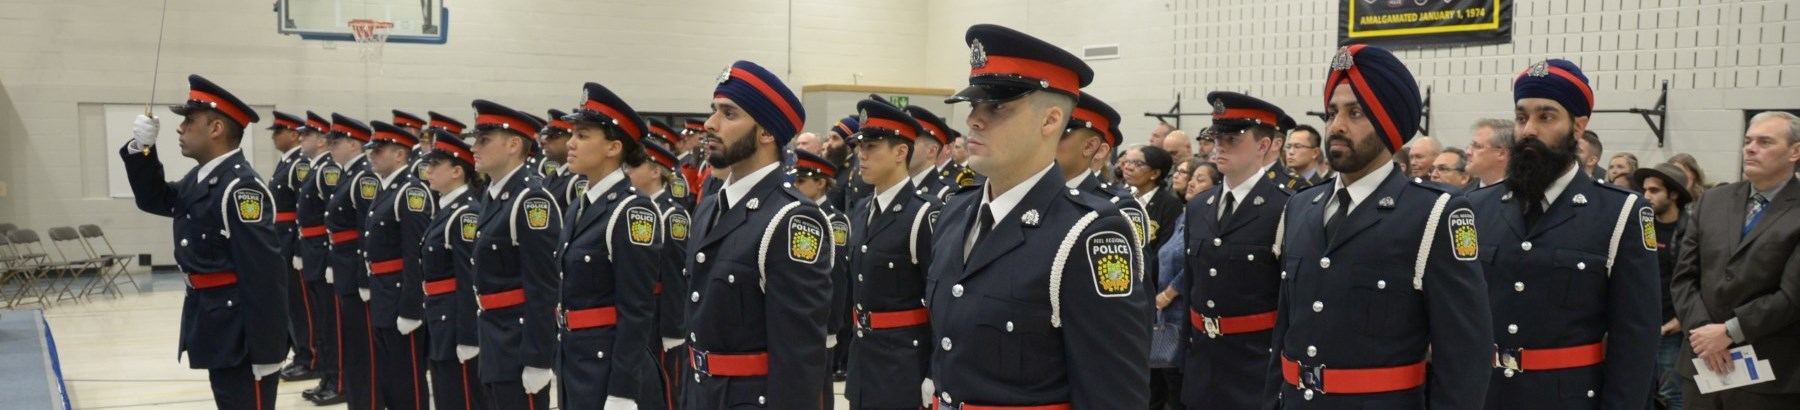 Other Careers Peel Regional Police